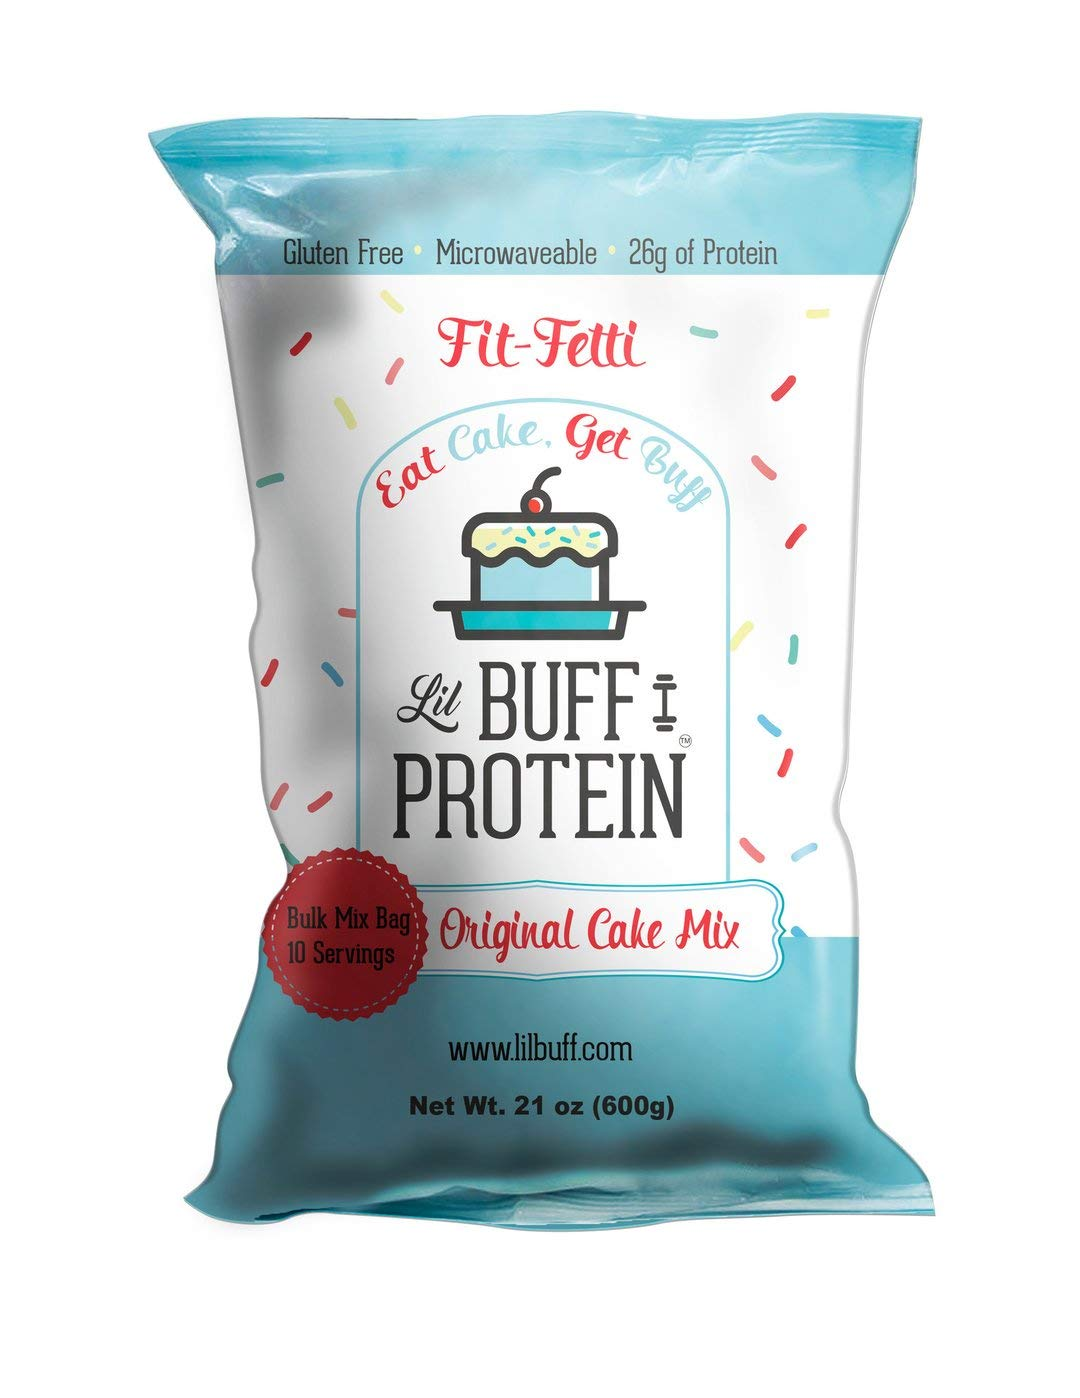 Lil Buff Protein | High Protein Cake Mix | Gluten Free, Microwaveable & 26g of Protein (FIT-FETTI, Bulk Mix 10 Servings)